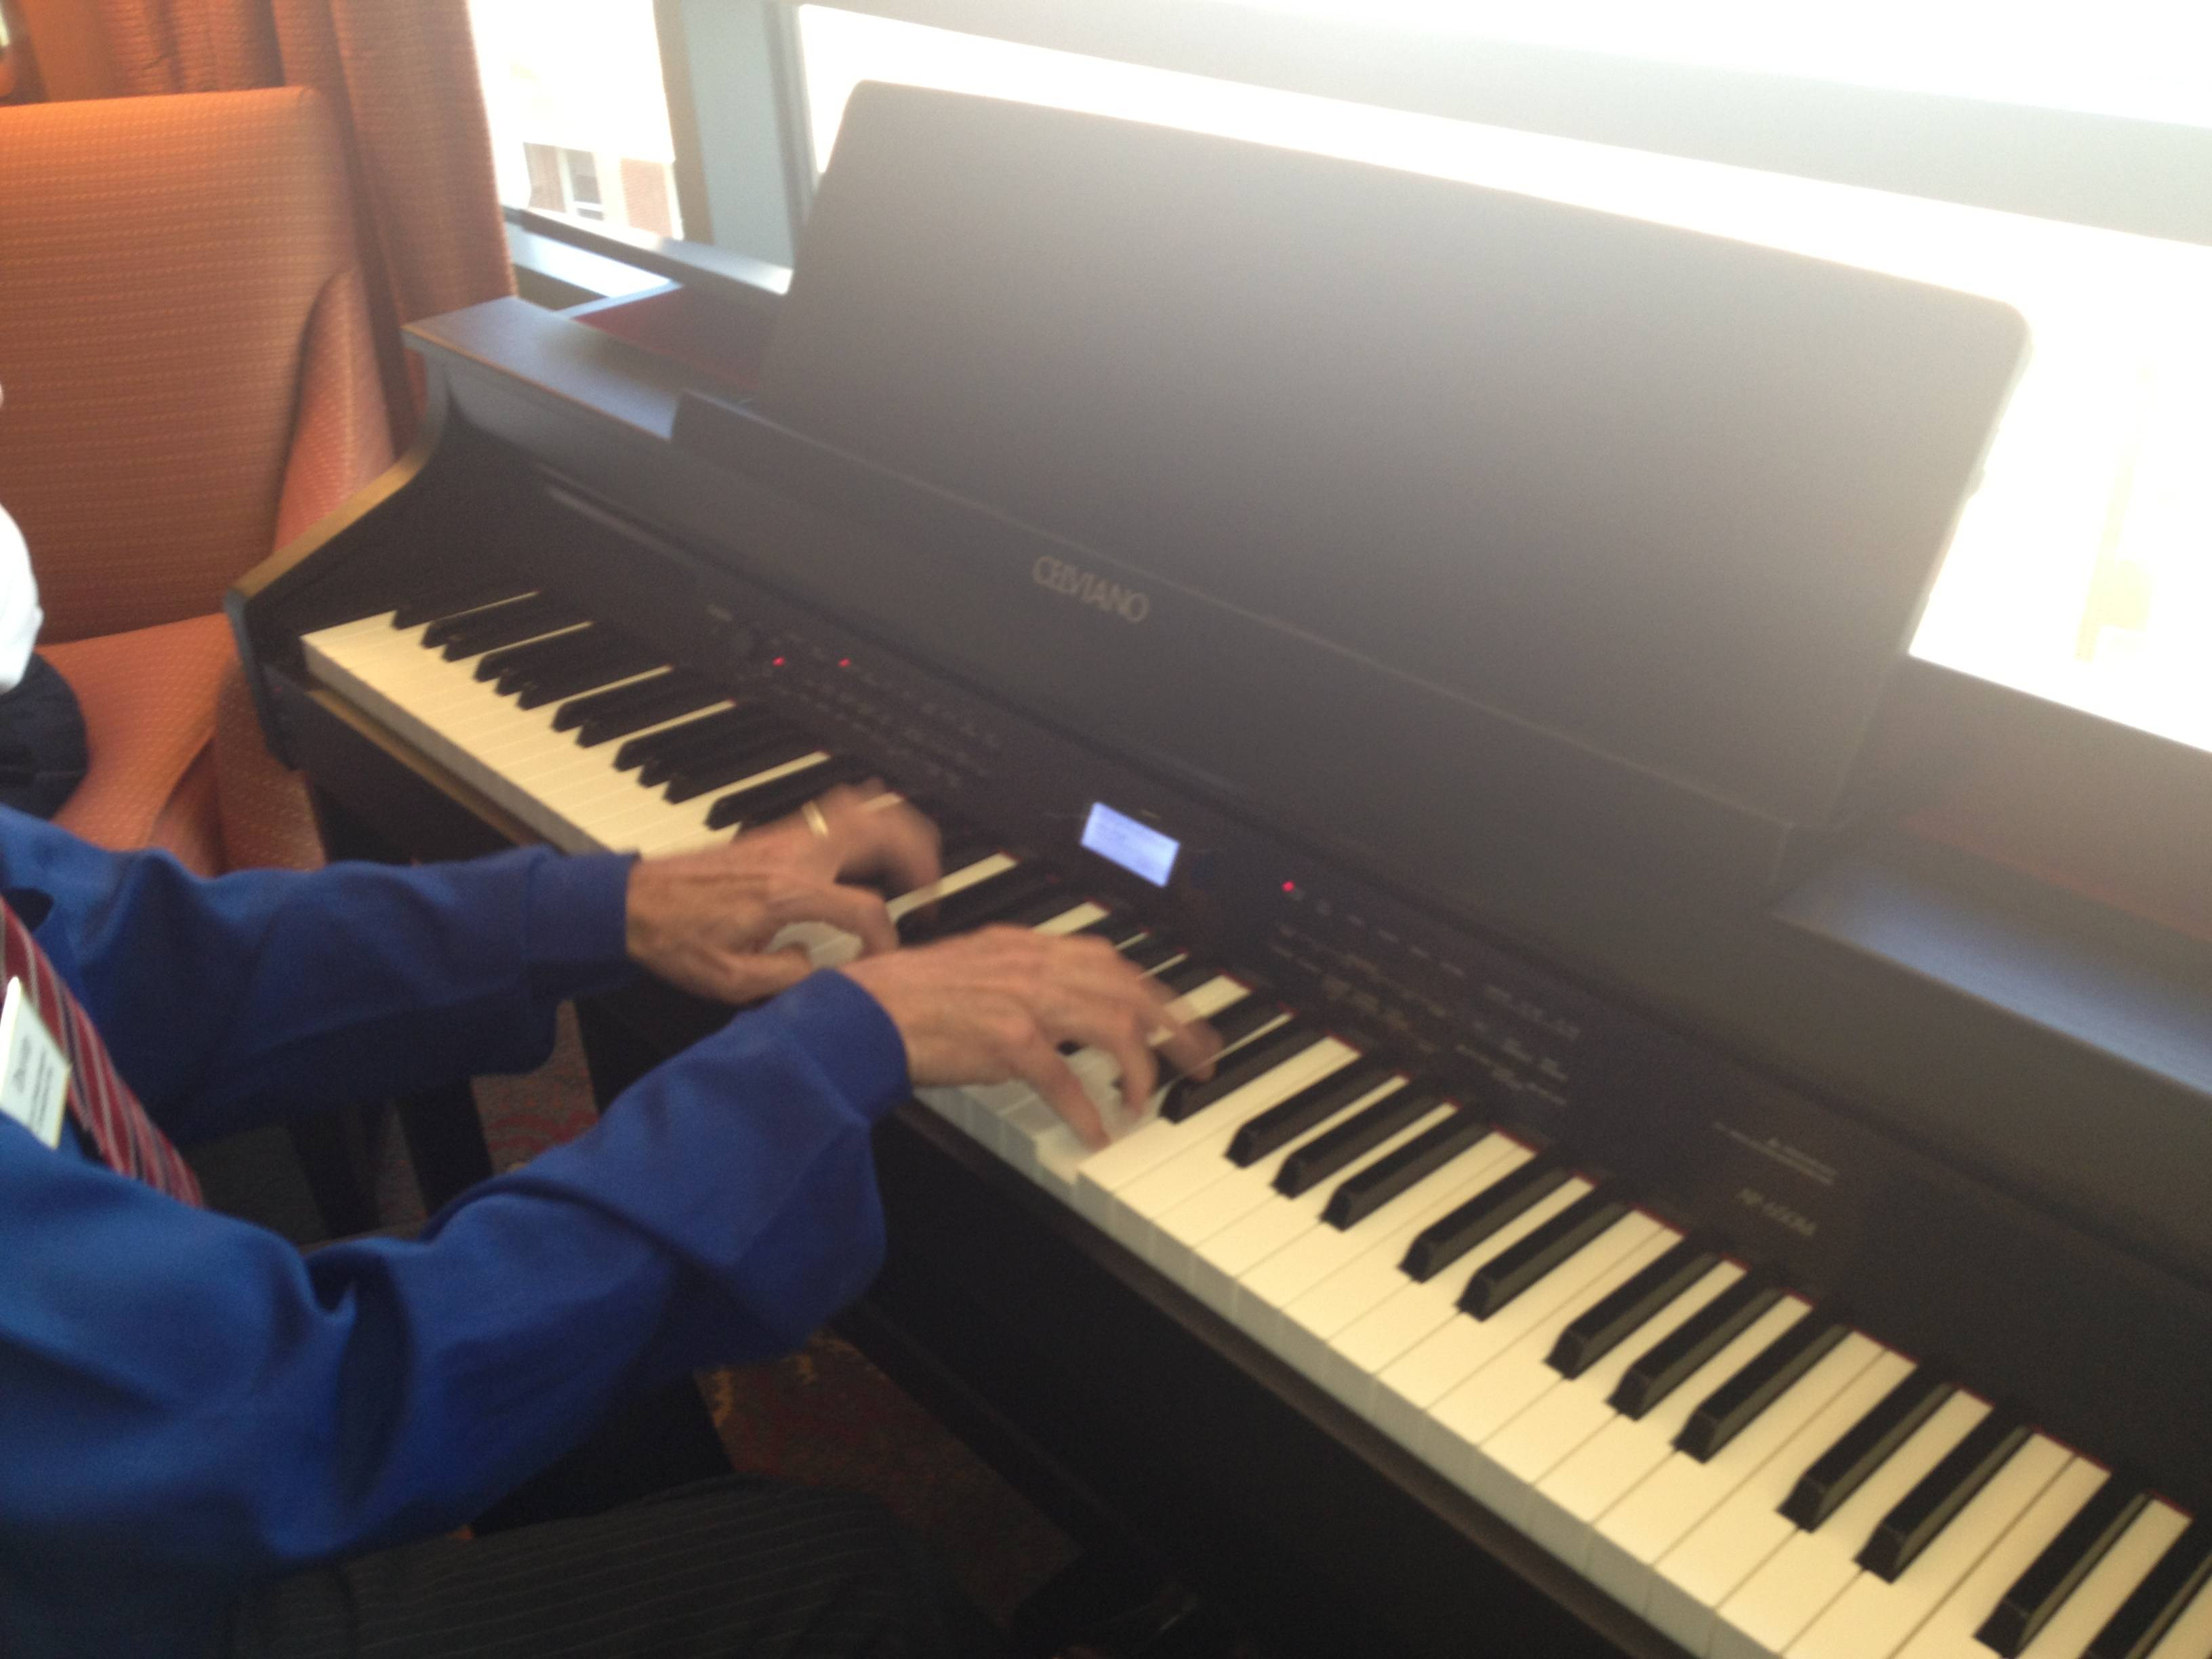 The Clare Charitable Foundation provides a piano for residents